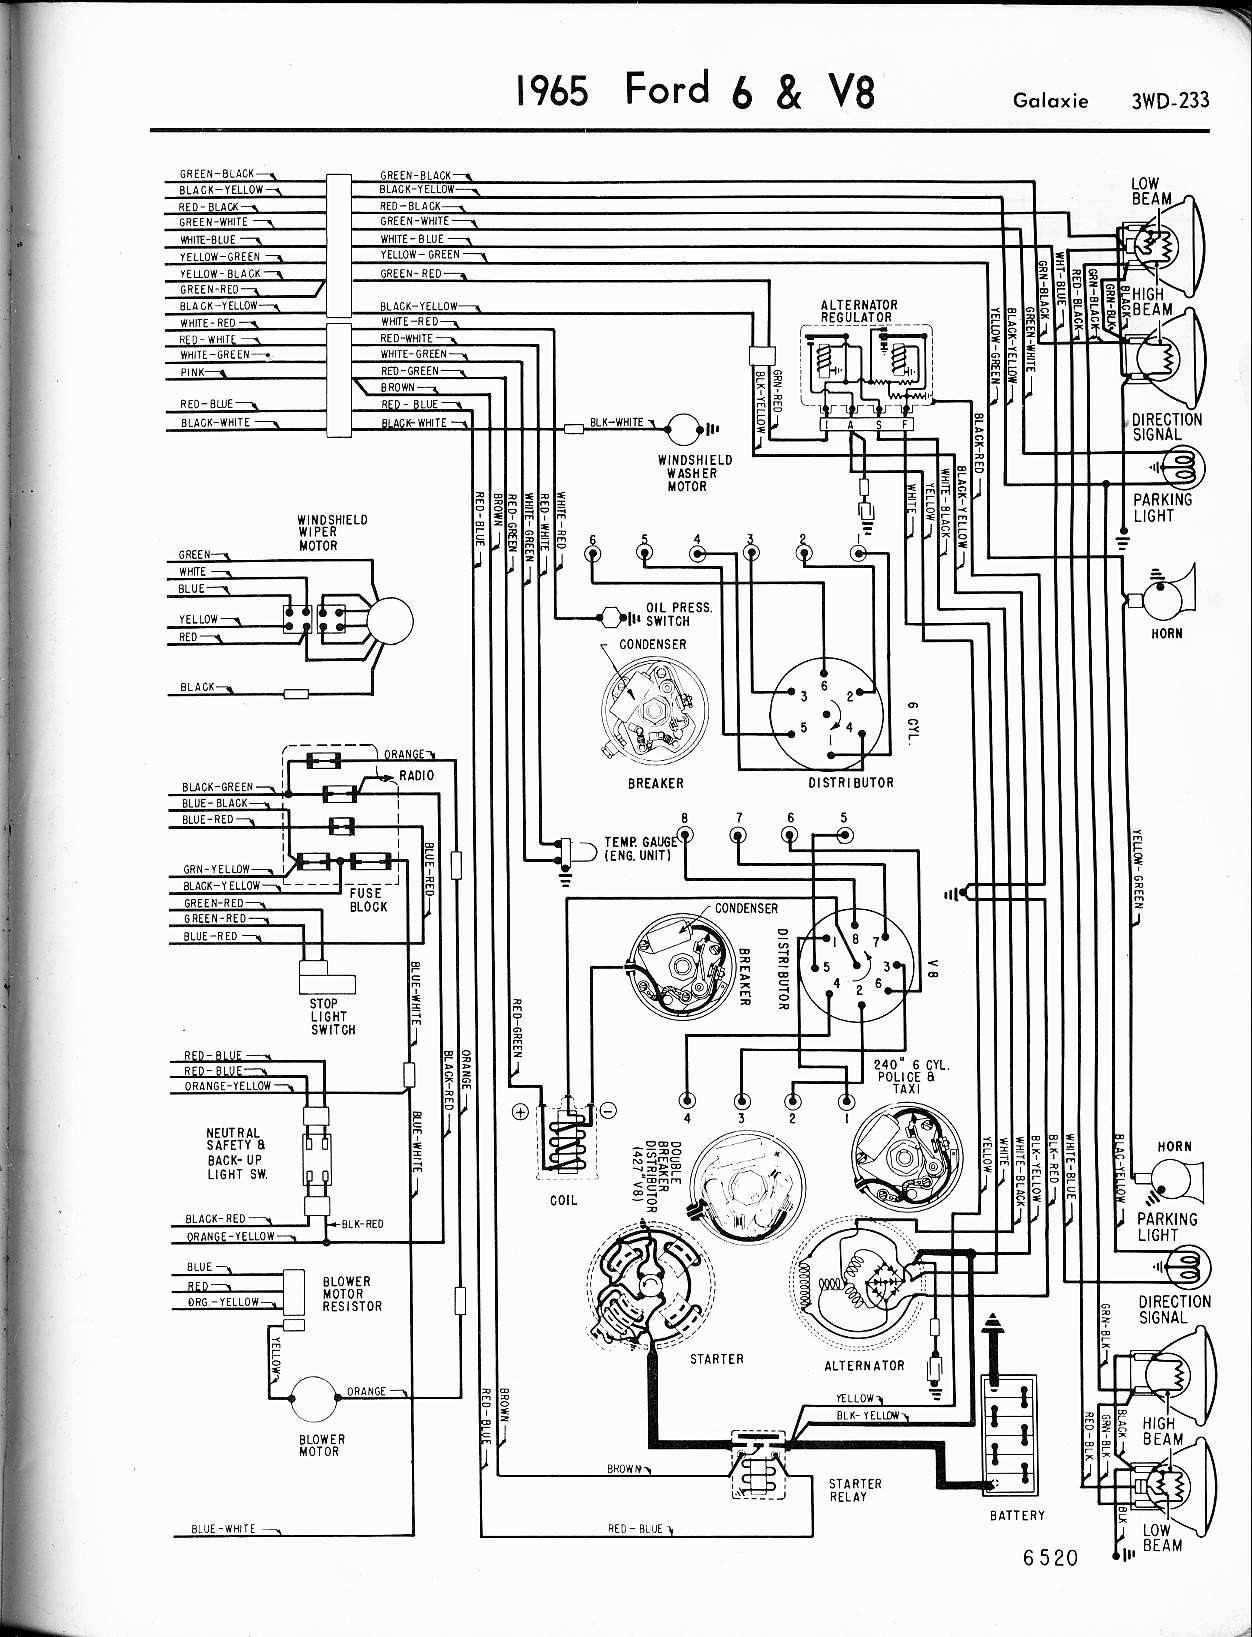 2002 ford Focus Wiring Diagram Wiring Diagram ford Galaxy 2002 Daily Update Wiring Diagram Of 2002 ford Focus Wiring Diagram Ad33 Mini Cooper Ac Wiring Diagrams